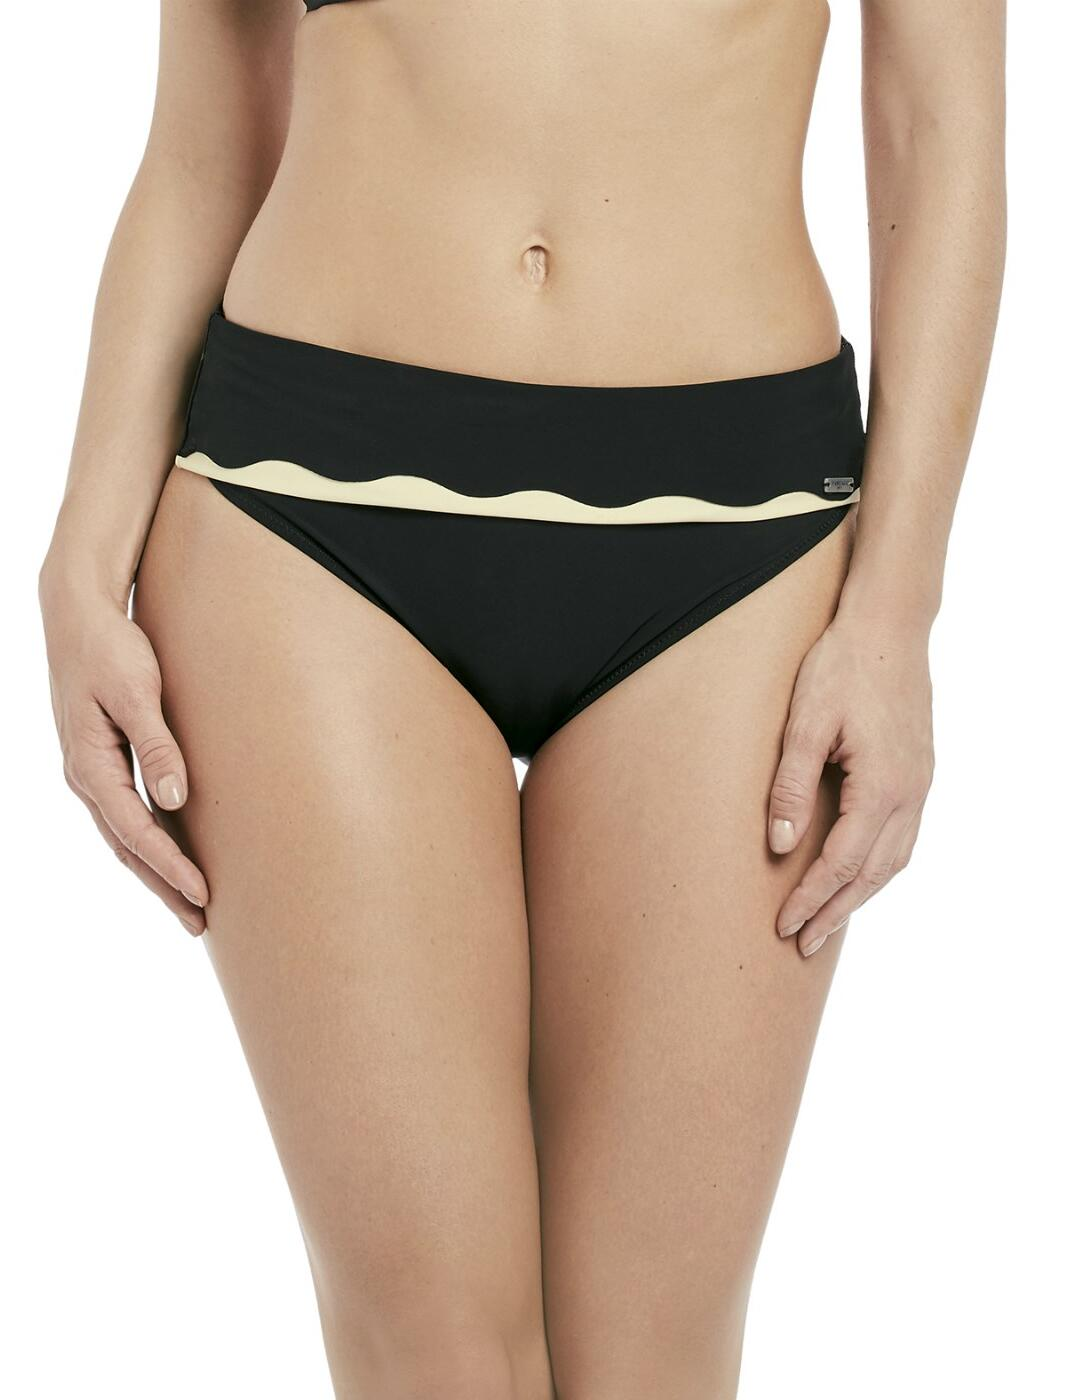 6235 Fantasie Sainte Maxime Fold Over Bikini Brief - 6235 Black/Cream